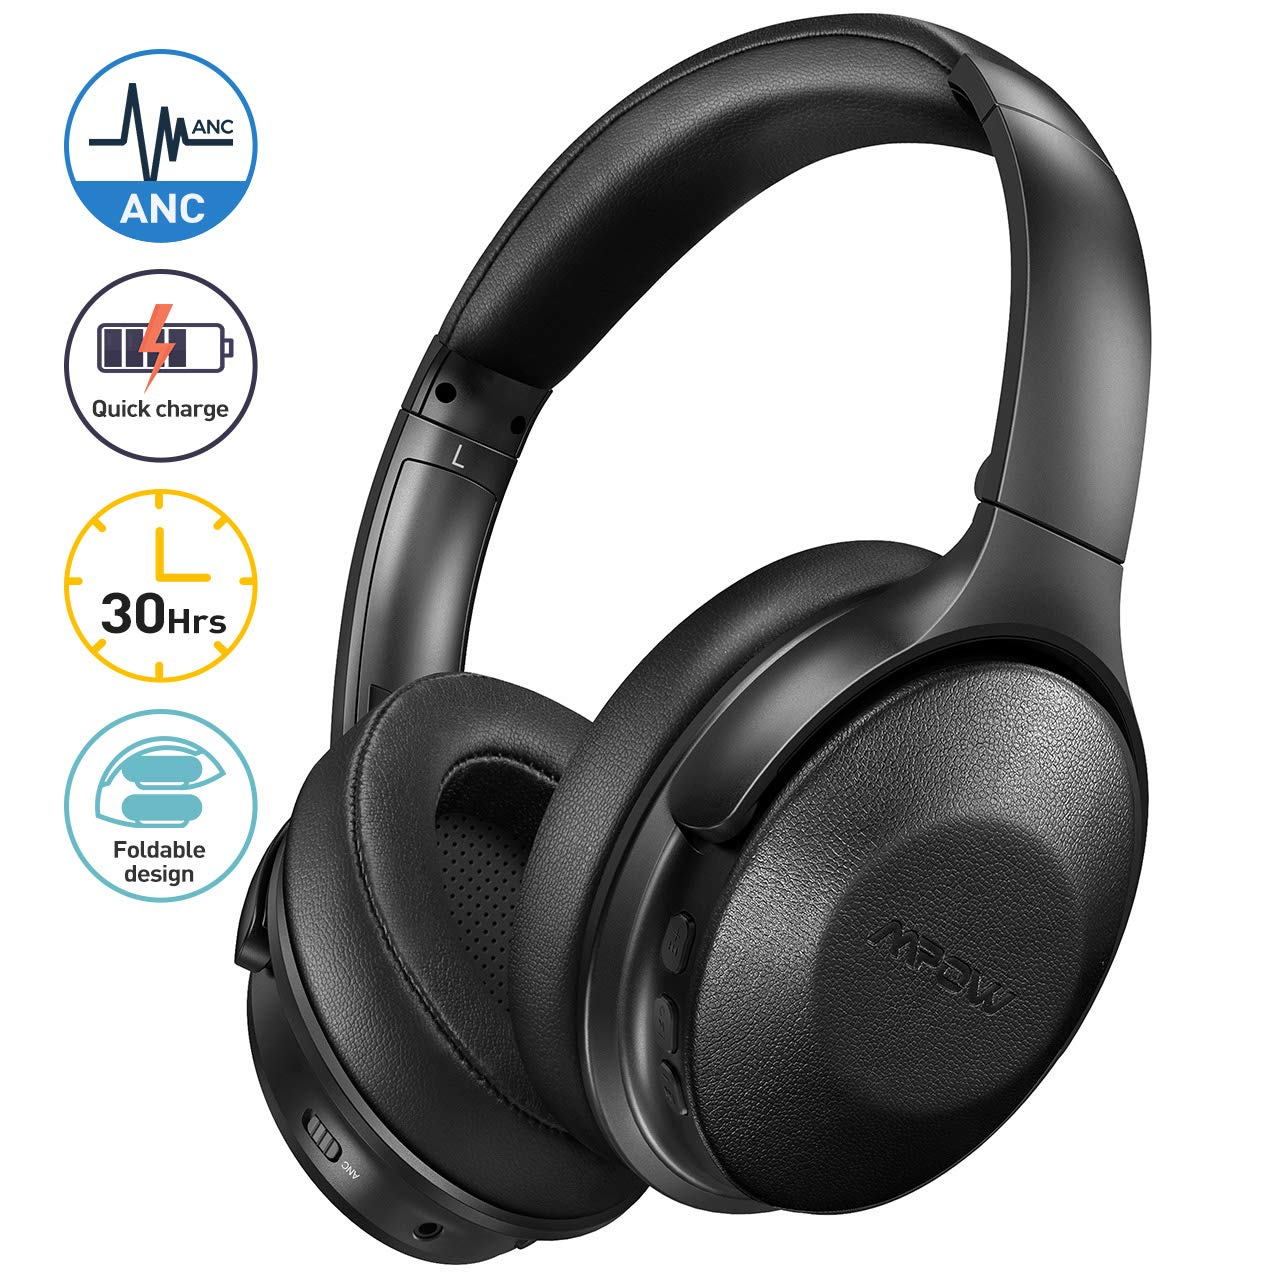 Mpow Active Noise Cancelling Headphones, [2020 Version] Over Ear Bluetooth Headphones with Quick Charge, Soft Protein Earpads Wireless Headphones with Deep Bass, 30H Playtime for TV Travel Cellphone